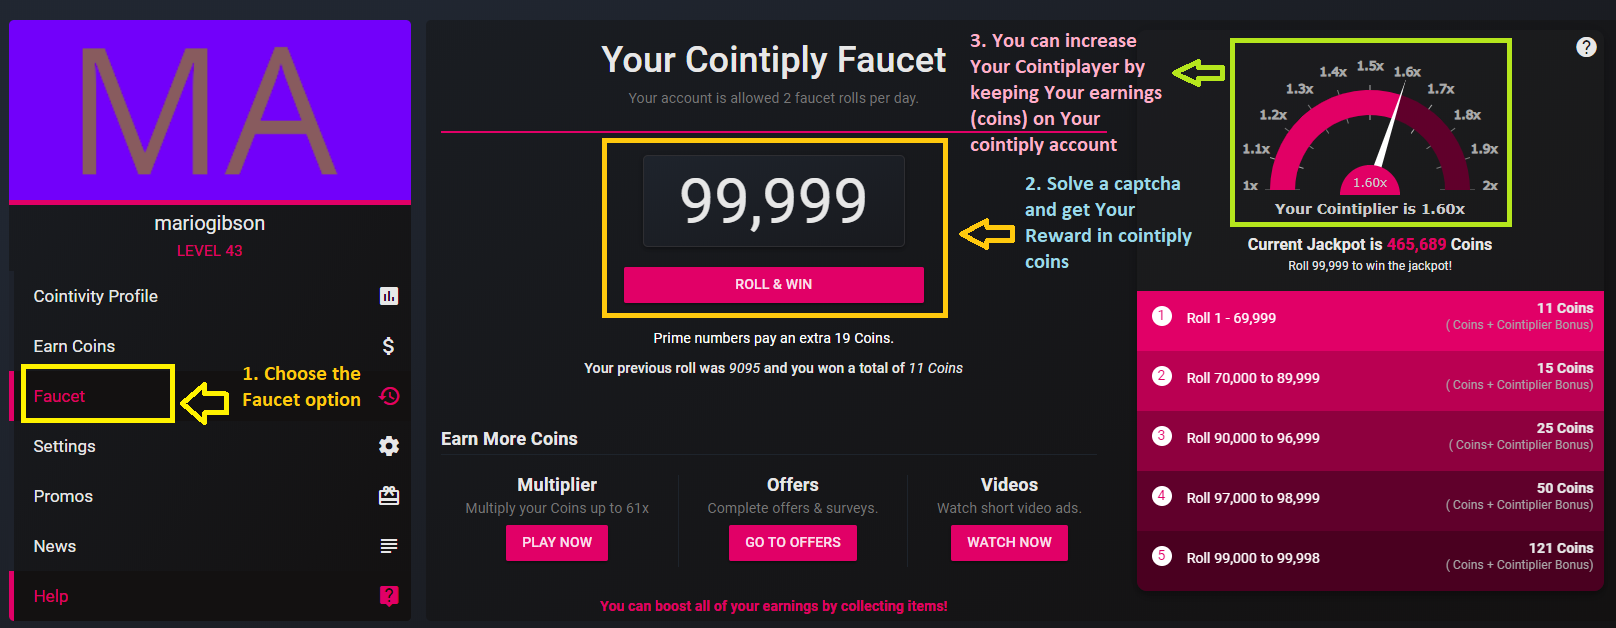 take free bitcoins on cointiply faucet